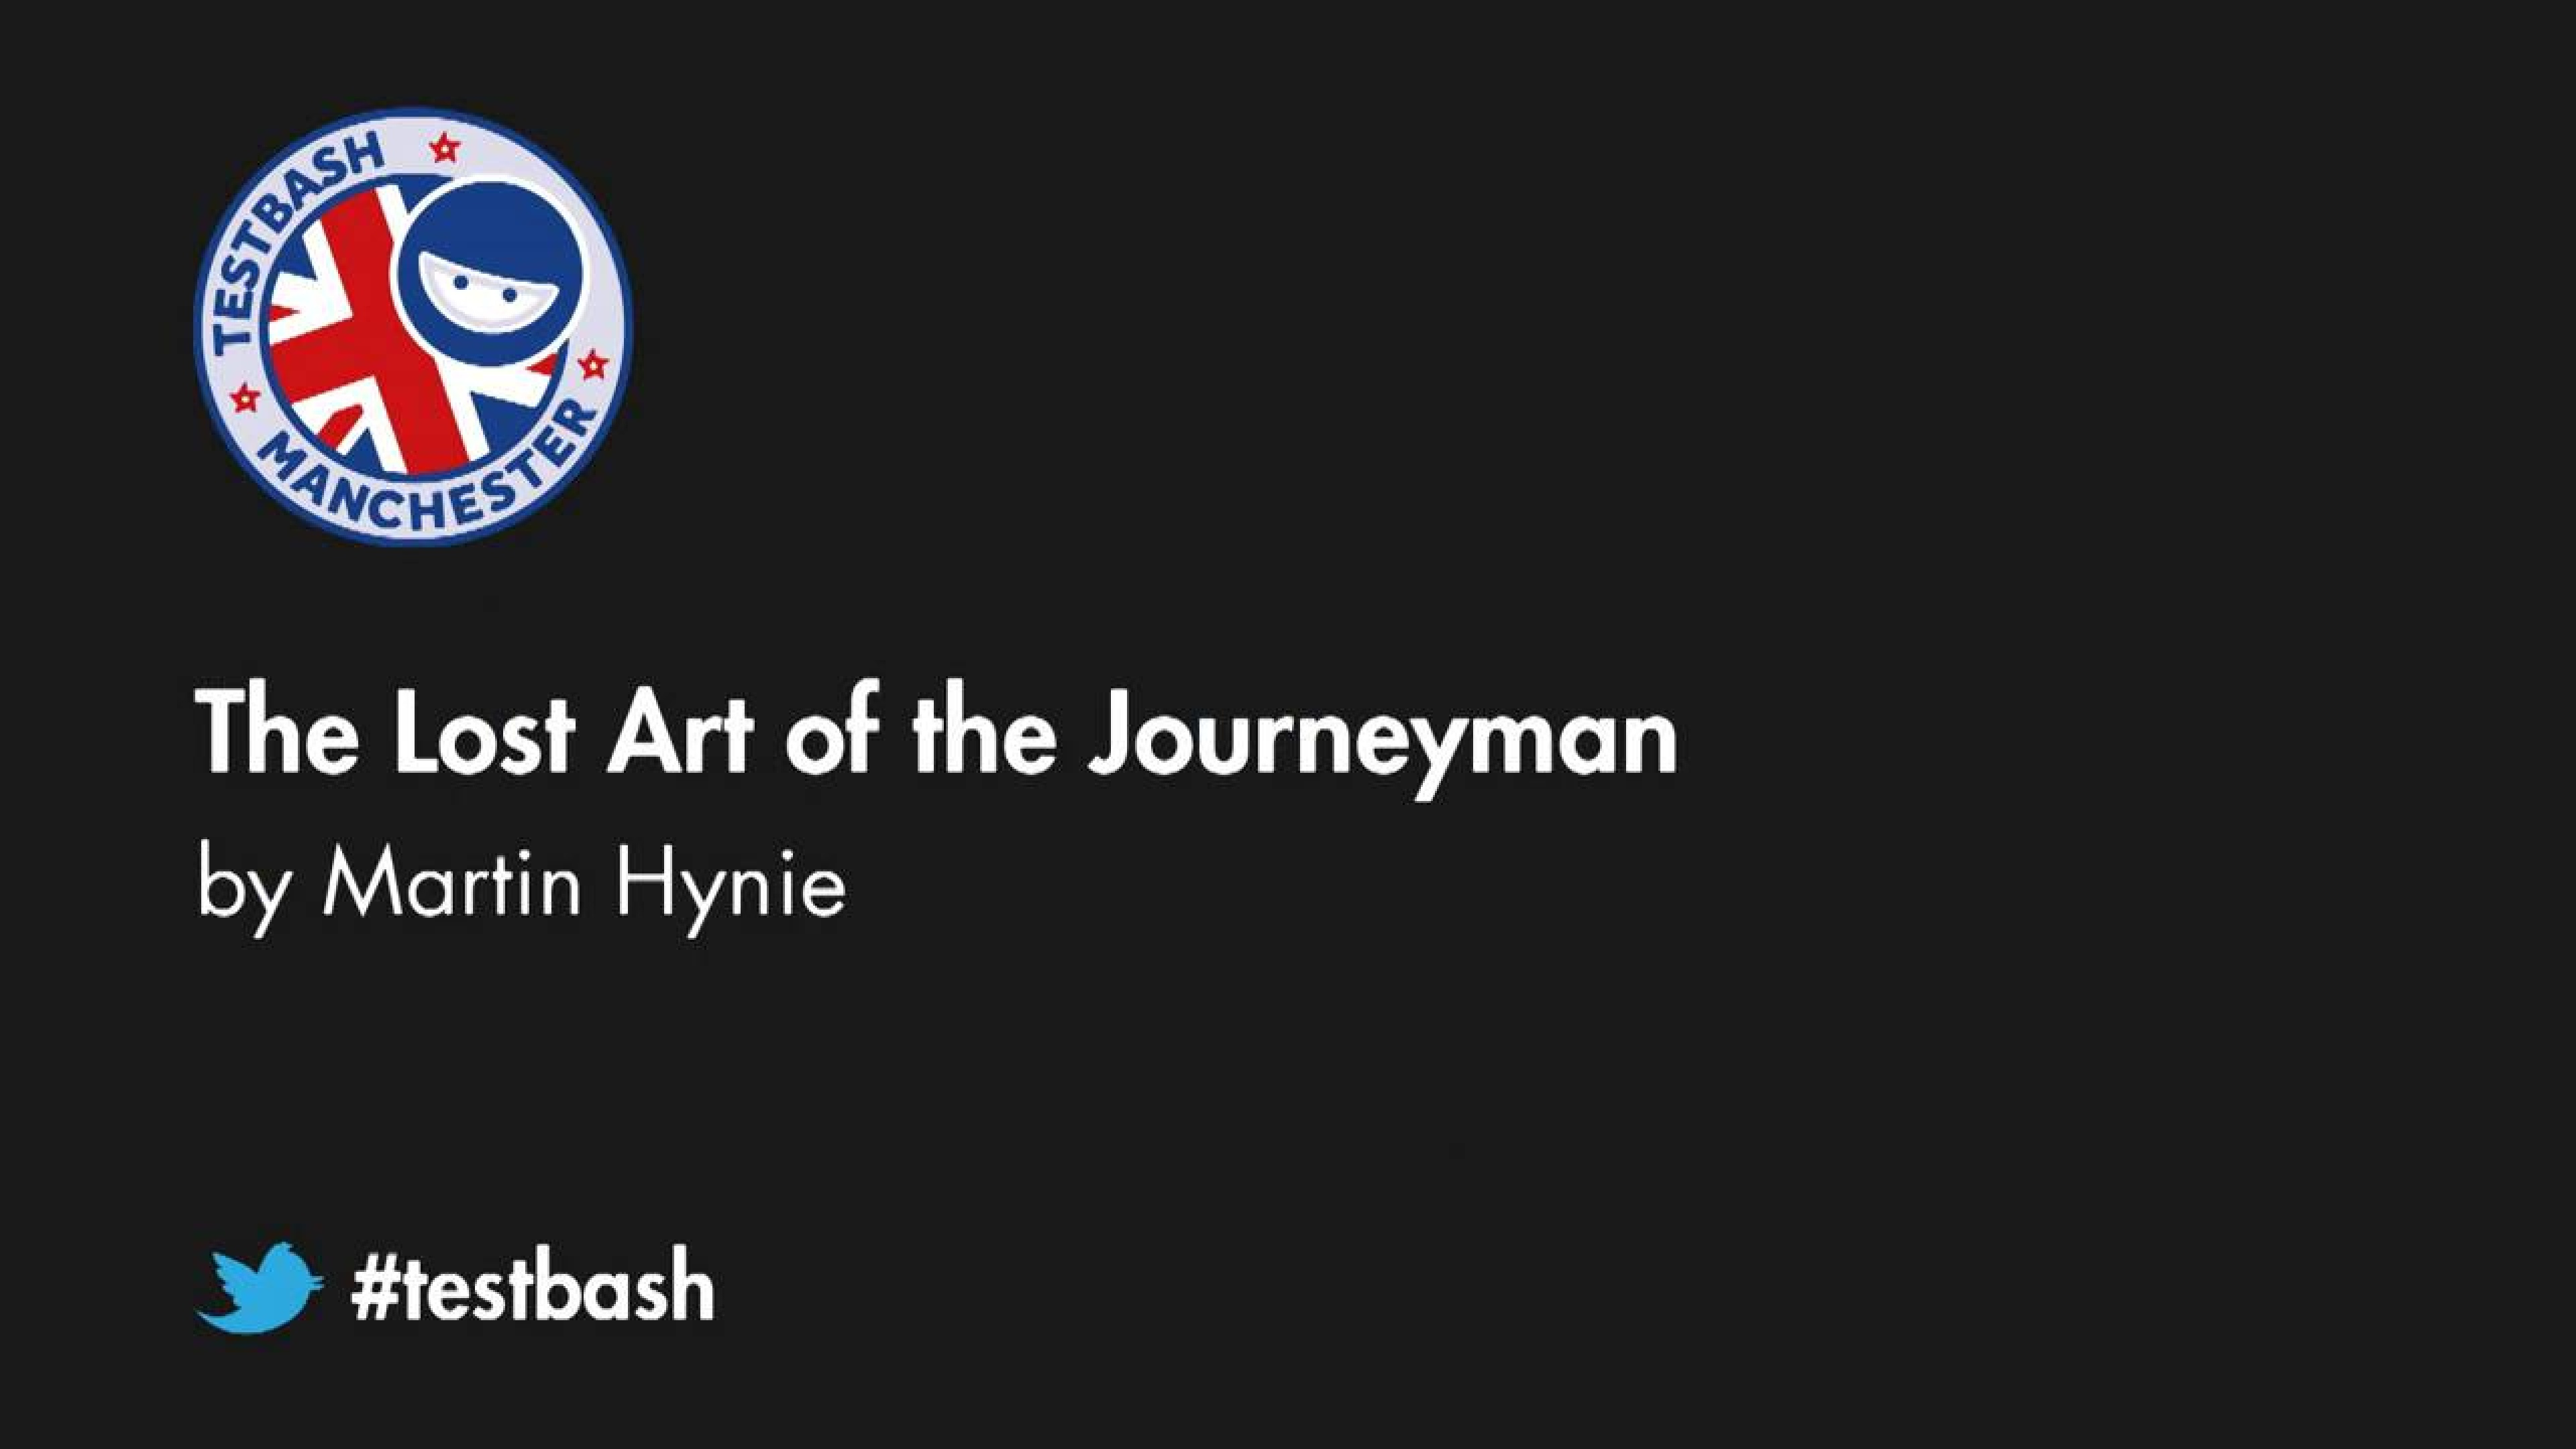 The Lost Art of the Journeyman - Martin Hynie